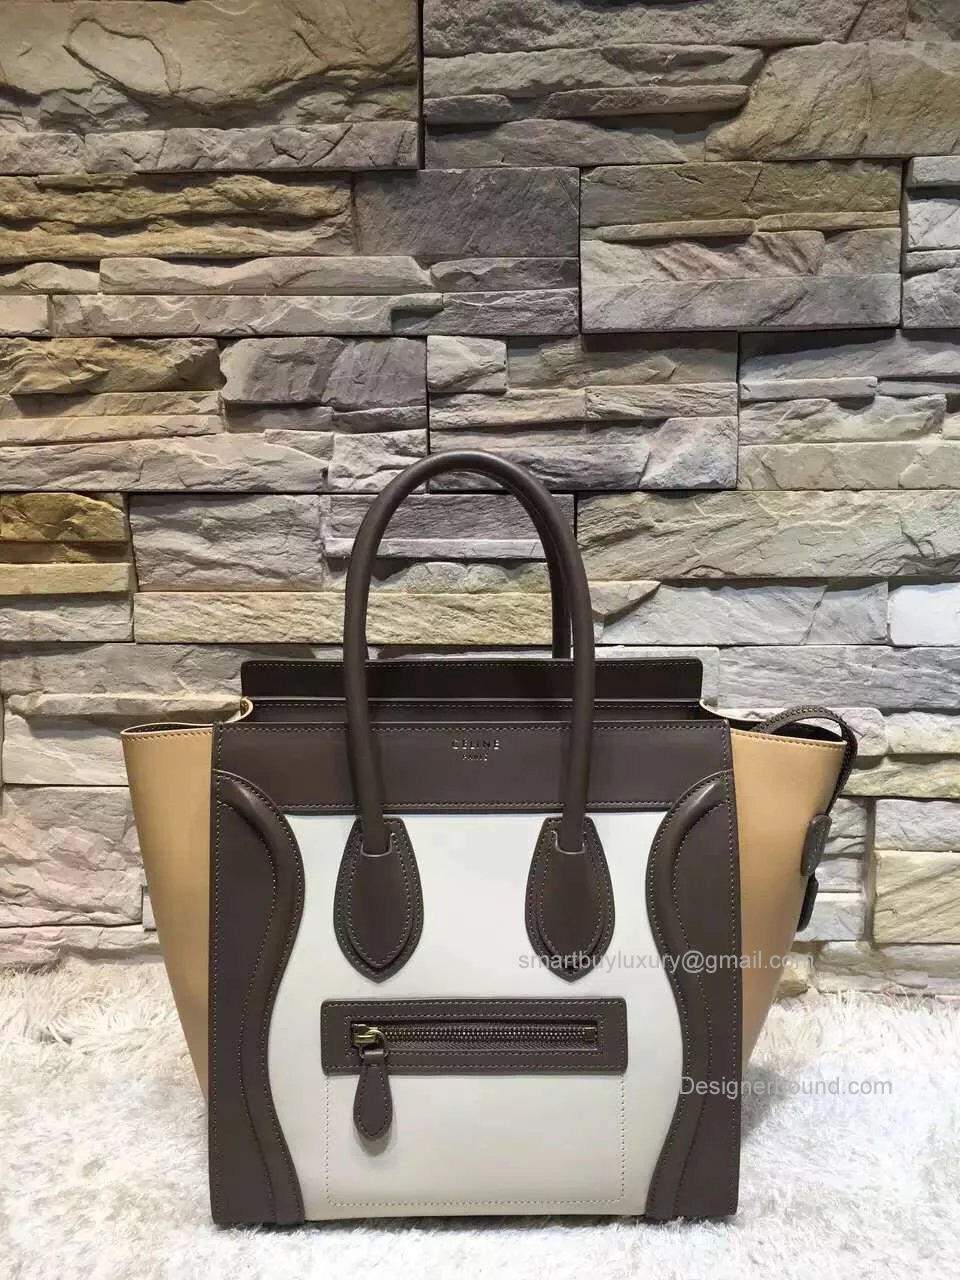 Replica Celine Mini Luggage Bag in Multcolor Chocolate Calfskin